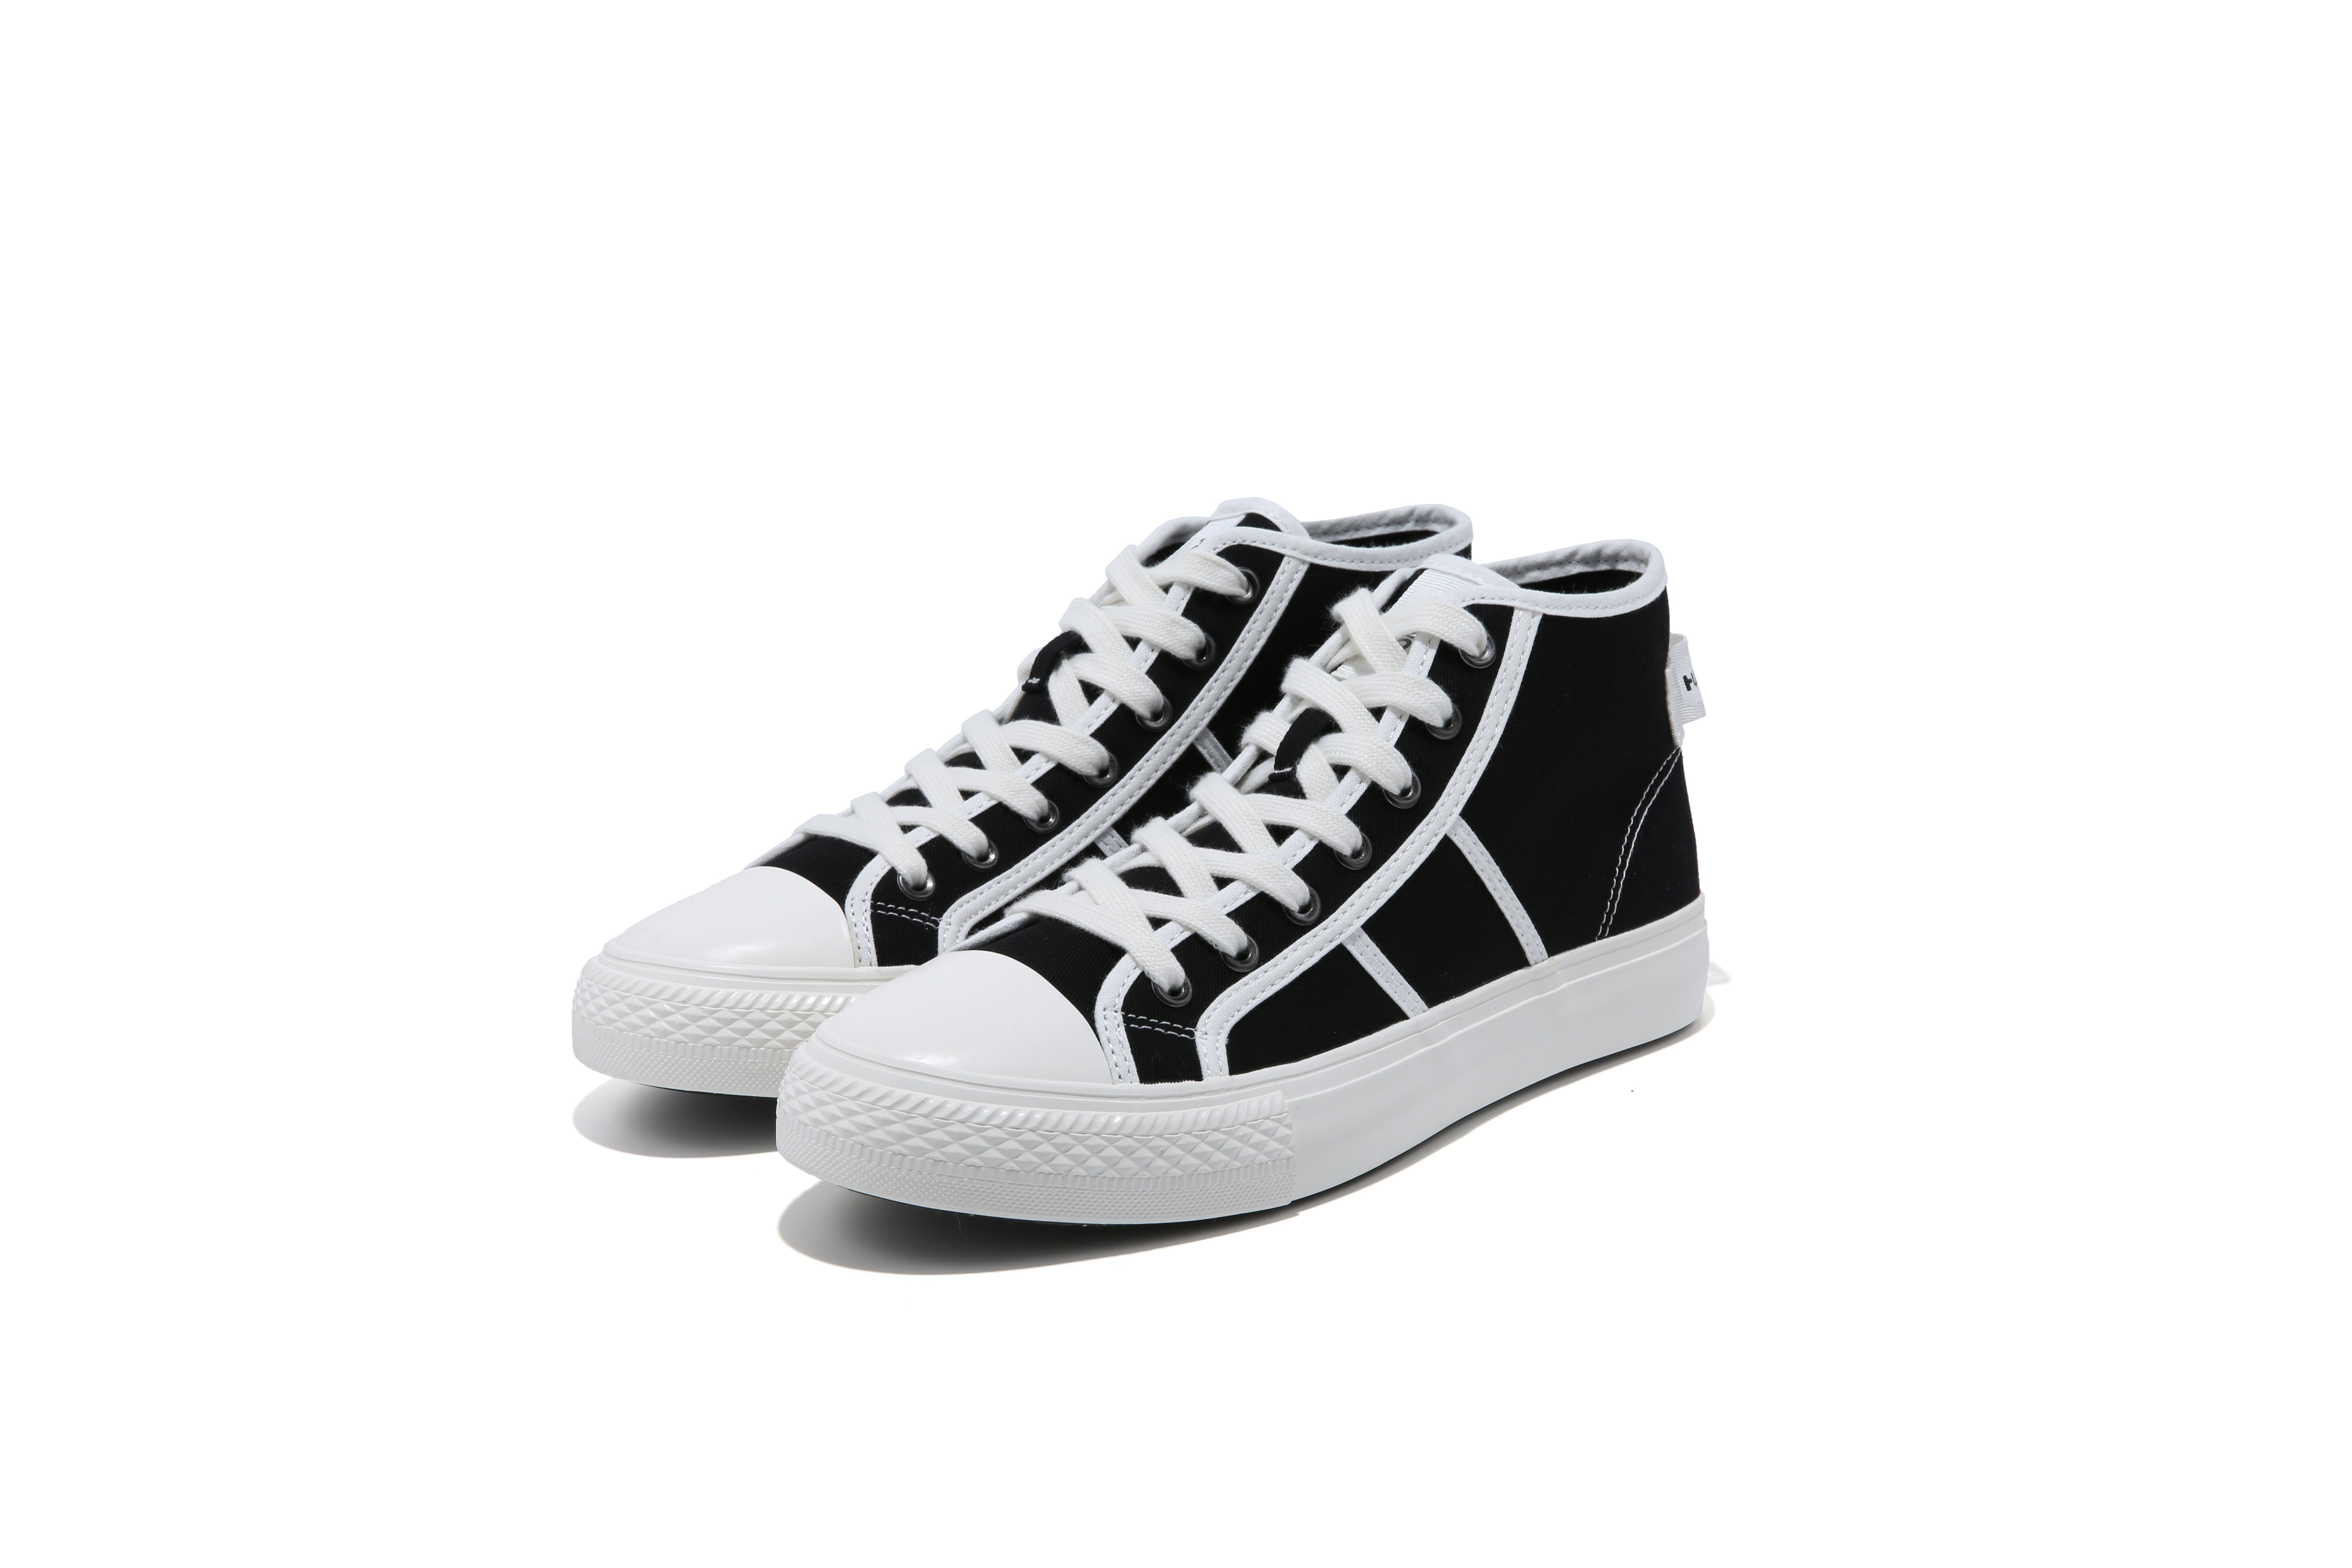 Factory manufacture comfortable lofer sneakers shoes men with unique design